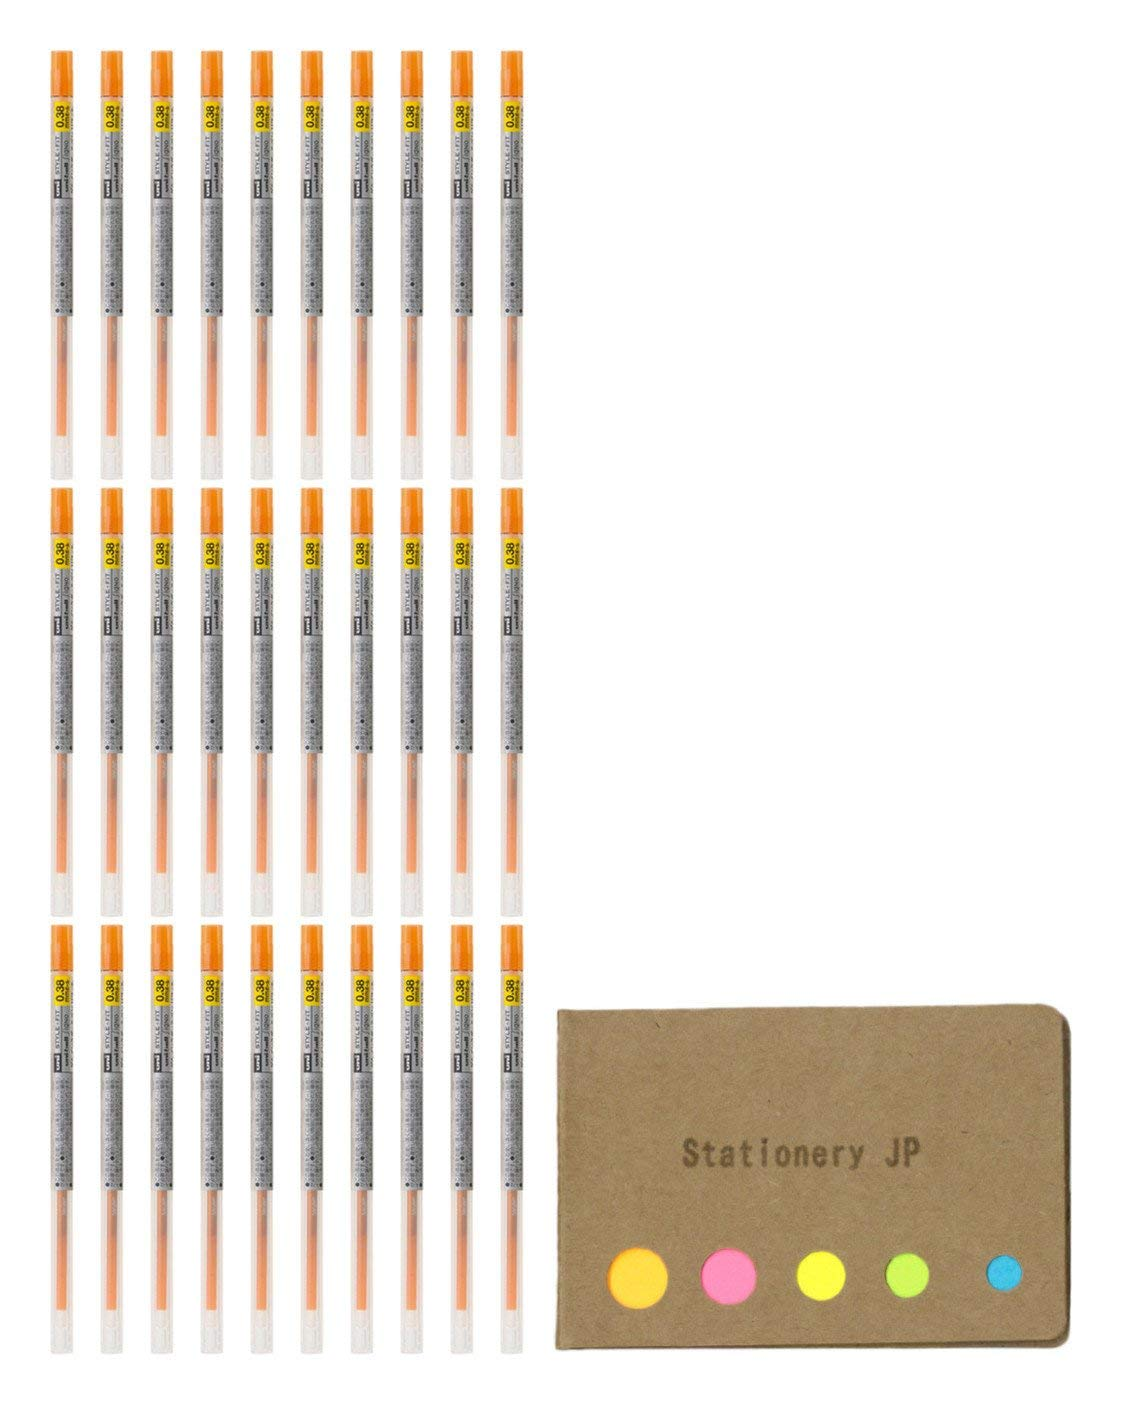 Uni-ball Signo Gel Ink Refills for Uni Style Fit Gel Multi Pen 0.38mm Orange Ink, 30-pack, Sticky Notes Value Set